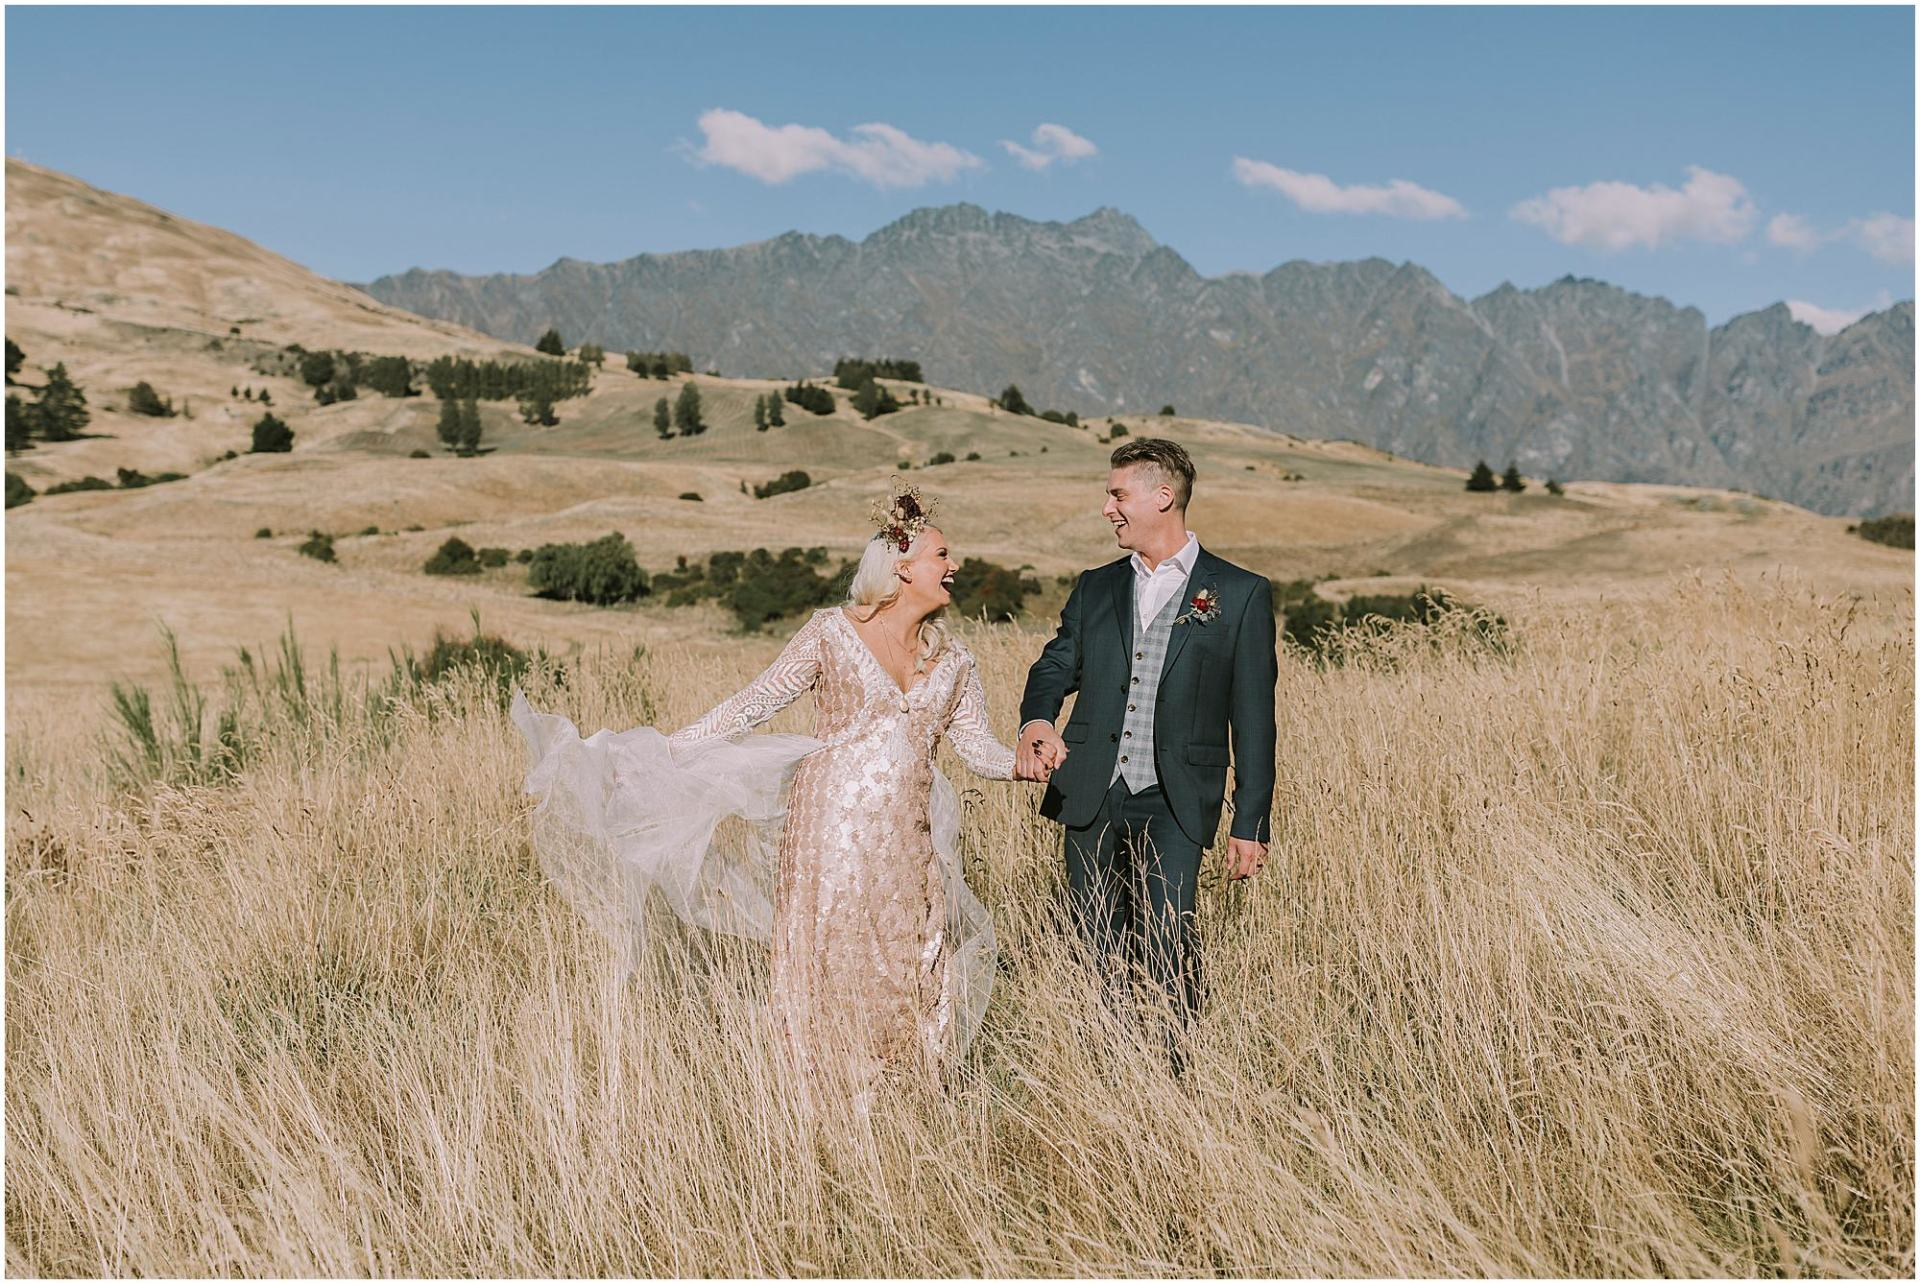 Boho & groom - Queenstown Wedding Photographer Charlotte Kiri